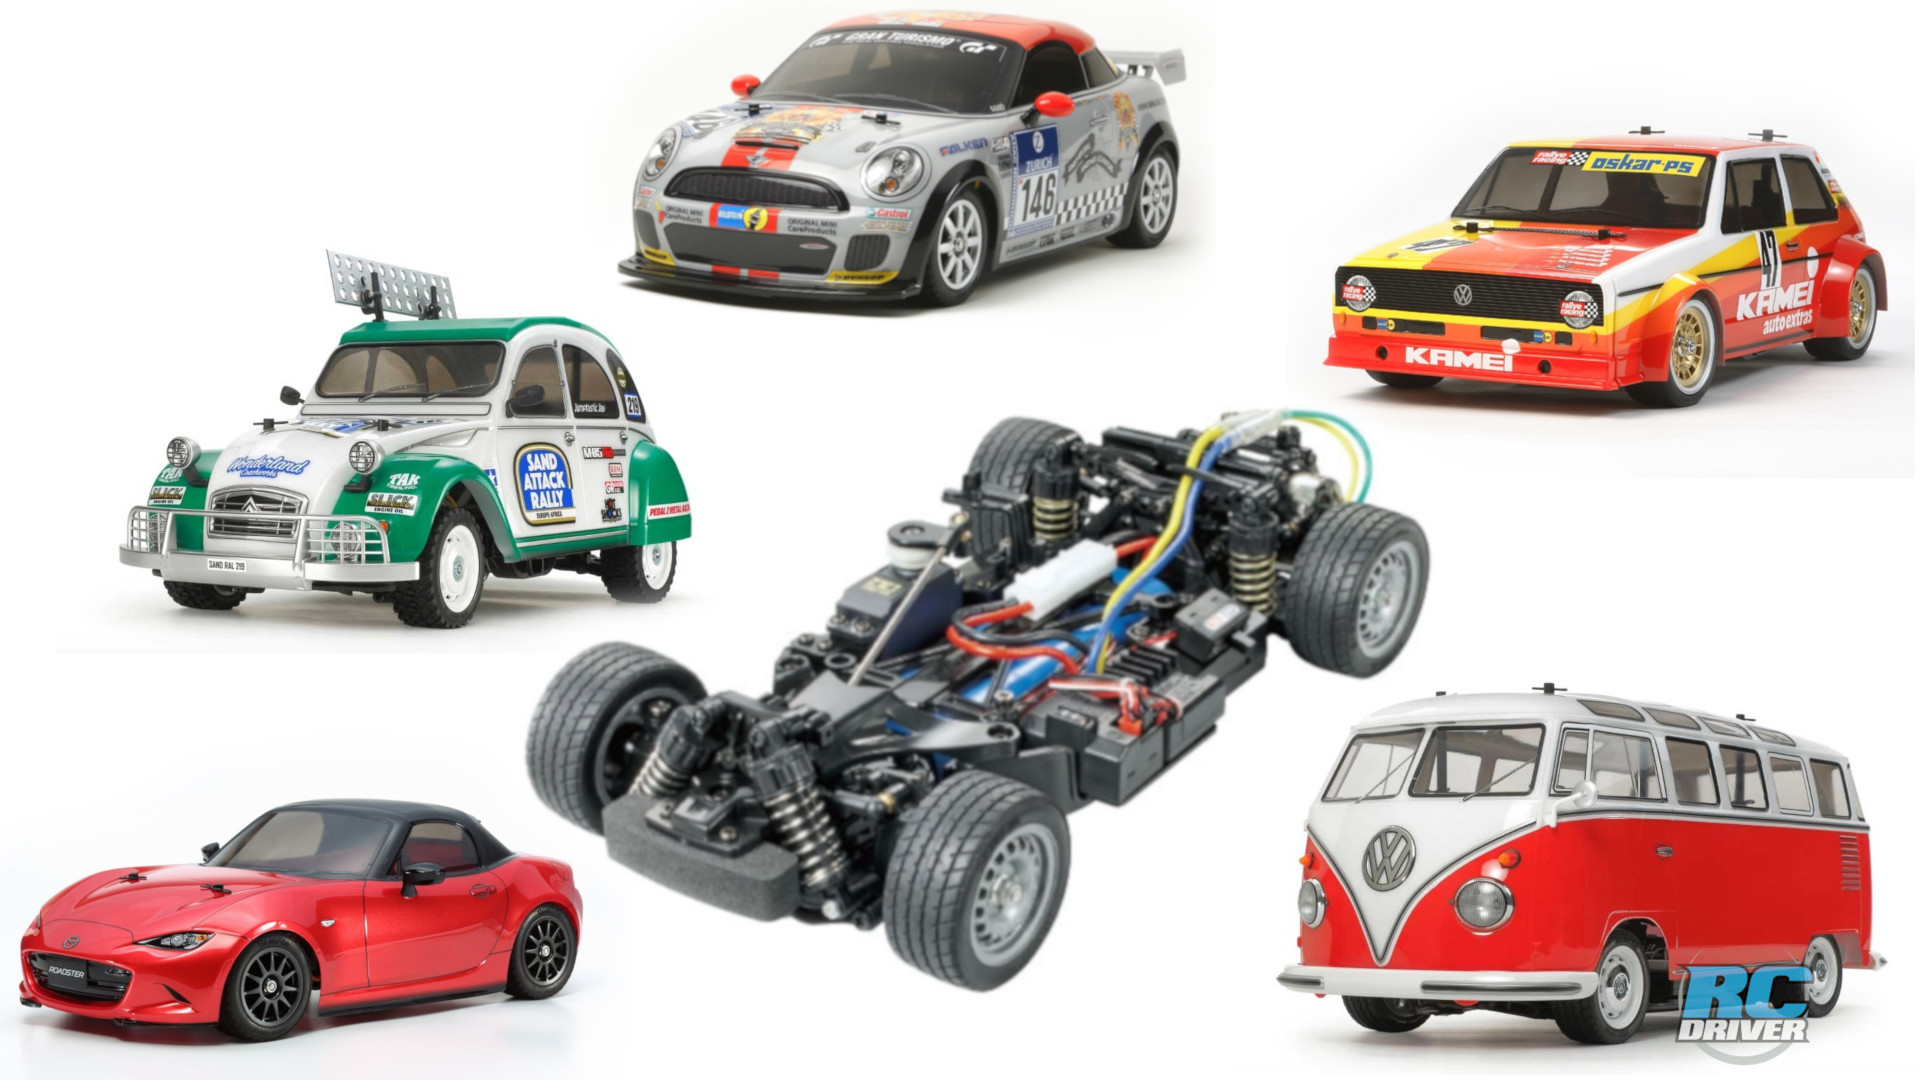 The Mighty M-Chassis from Tamiya